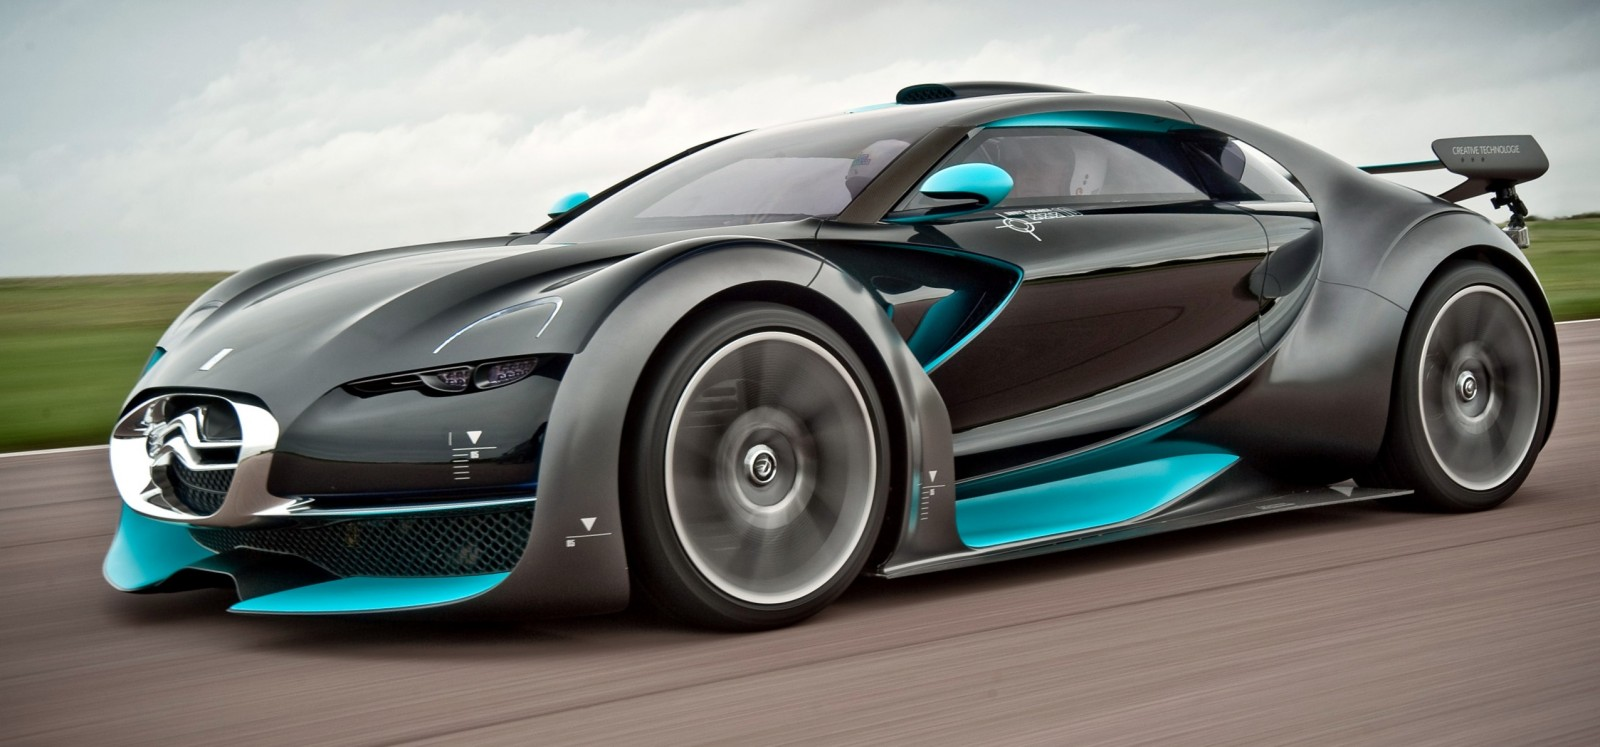 Concept Flashback - 2010 Citroen Survolt 12